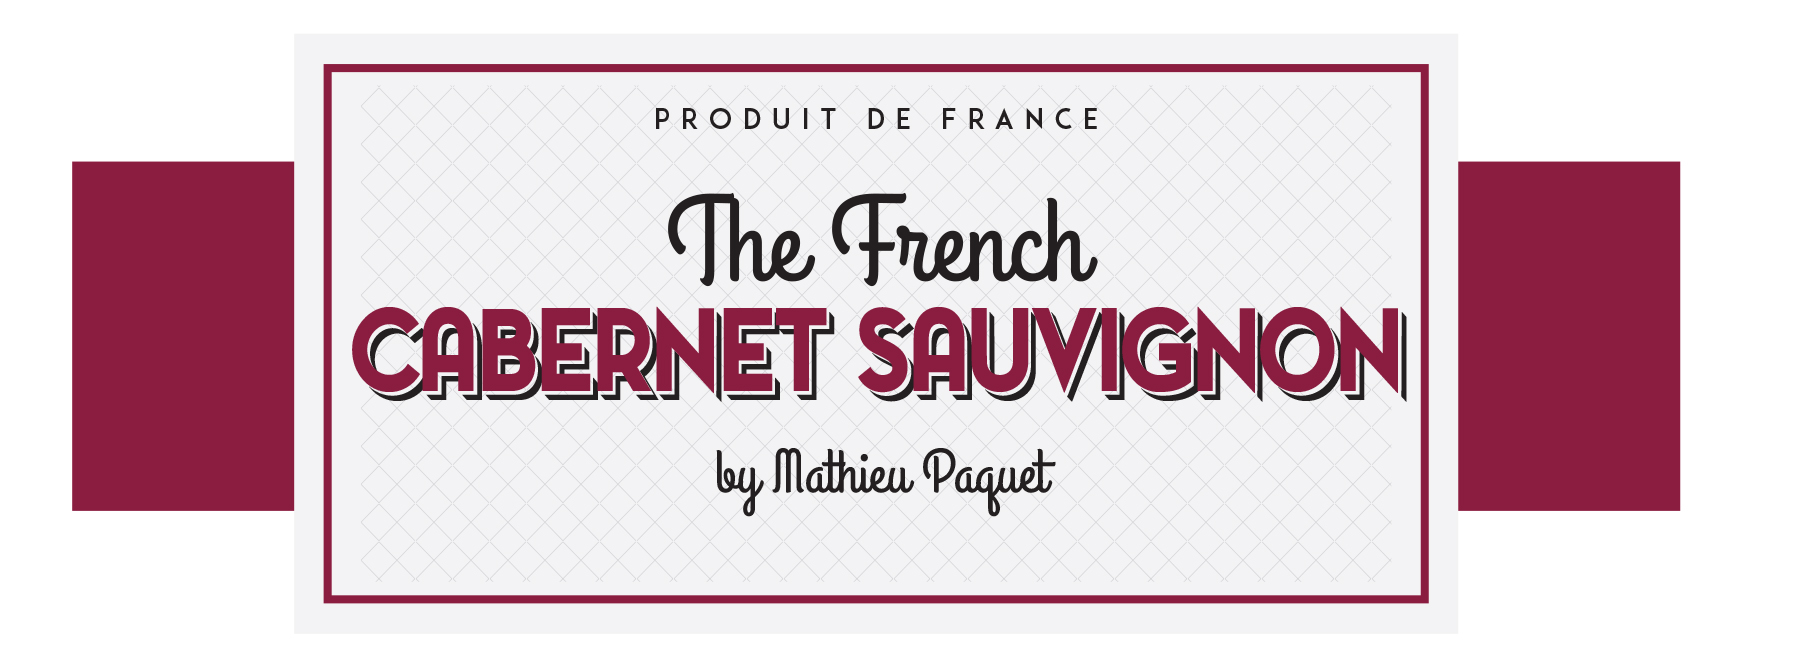 Étiquette The French Cabernet Sauvignon